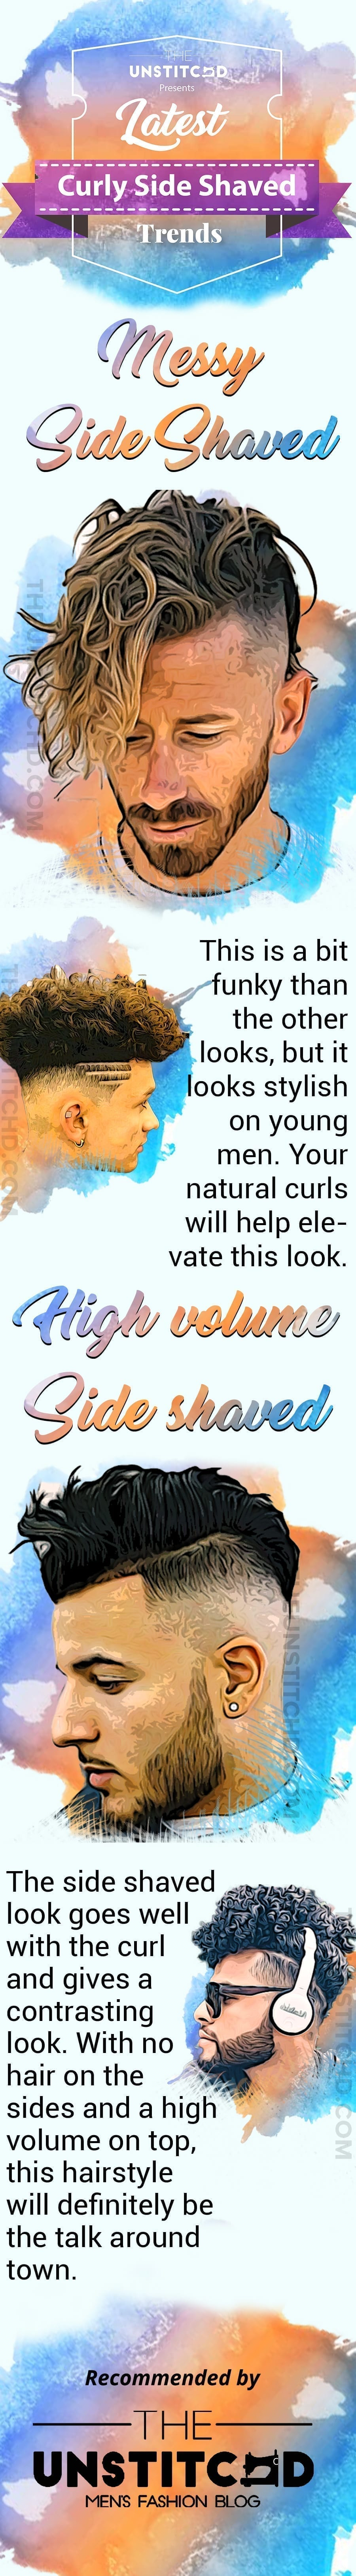 Side-shaved-curly-hairstyle-info